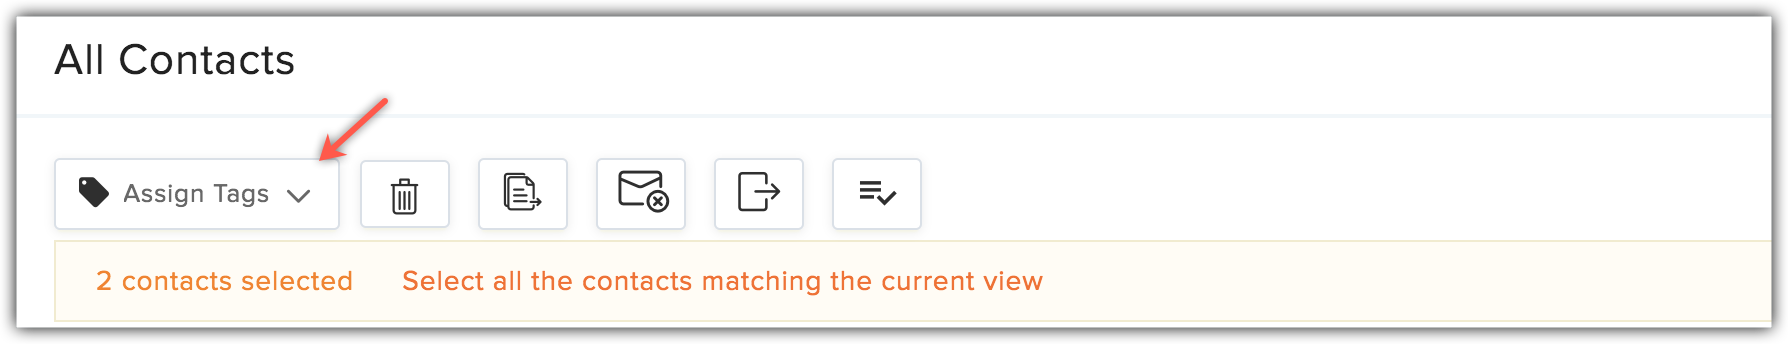 assign tags dropdown